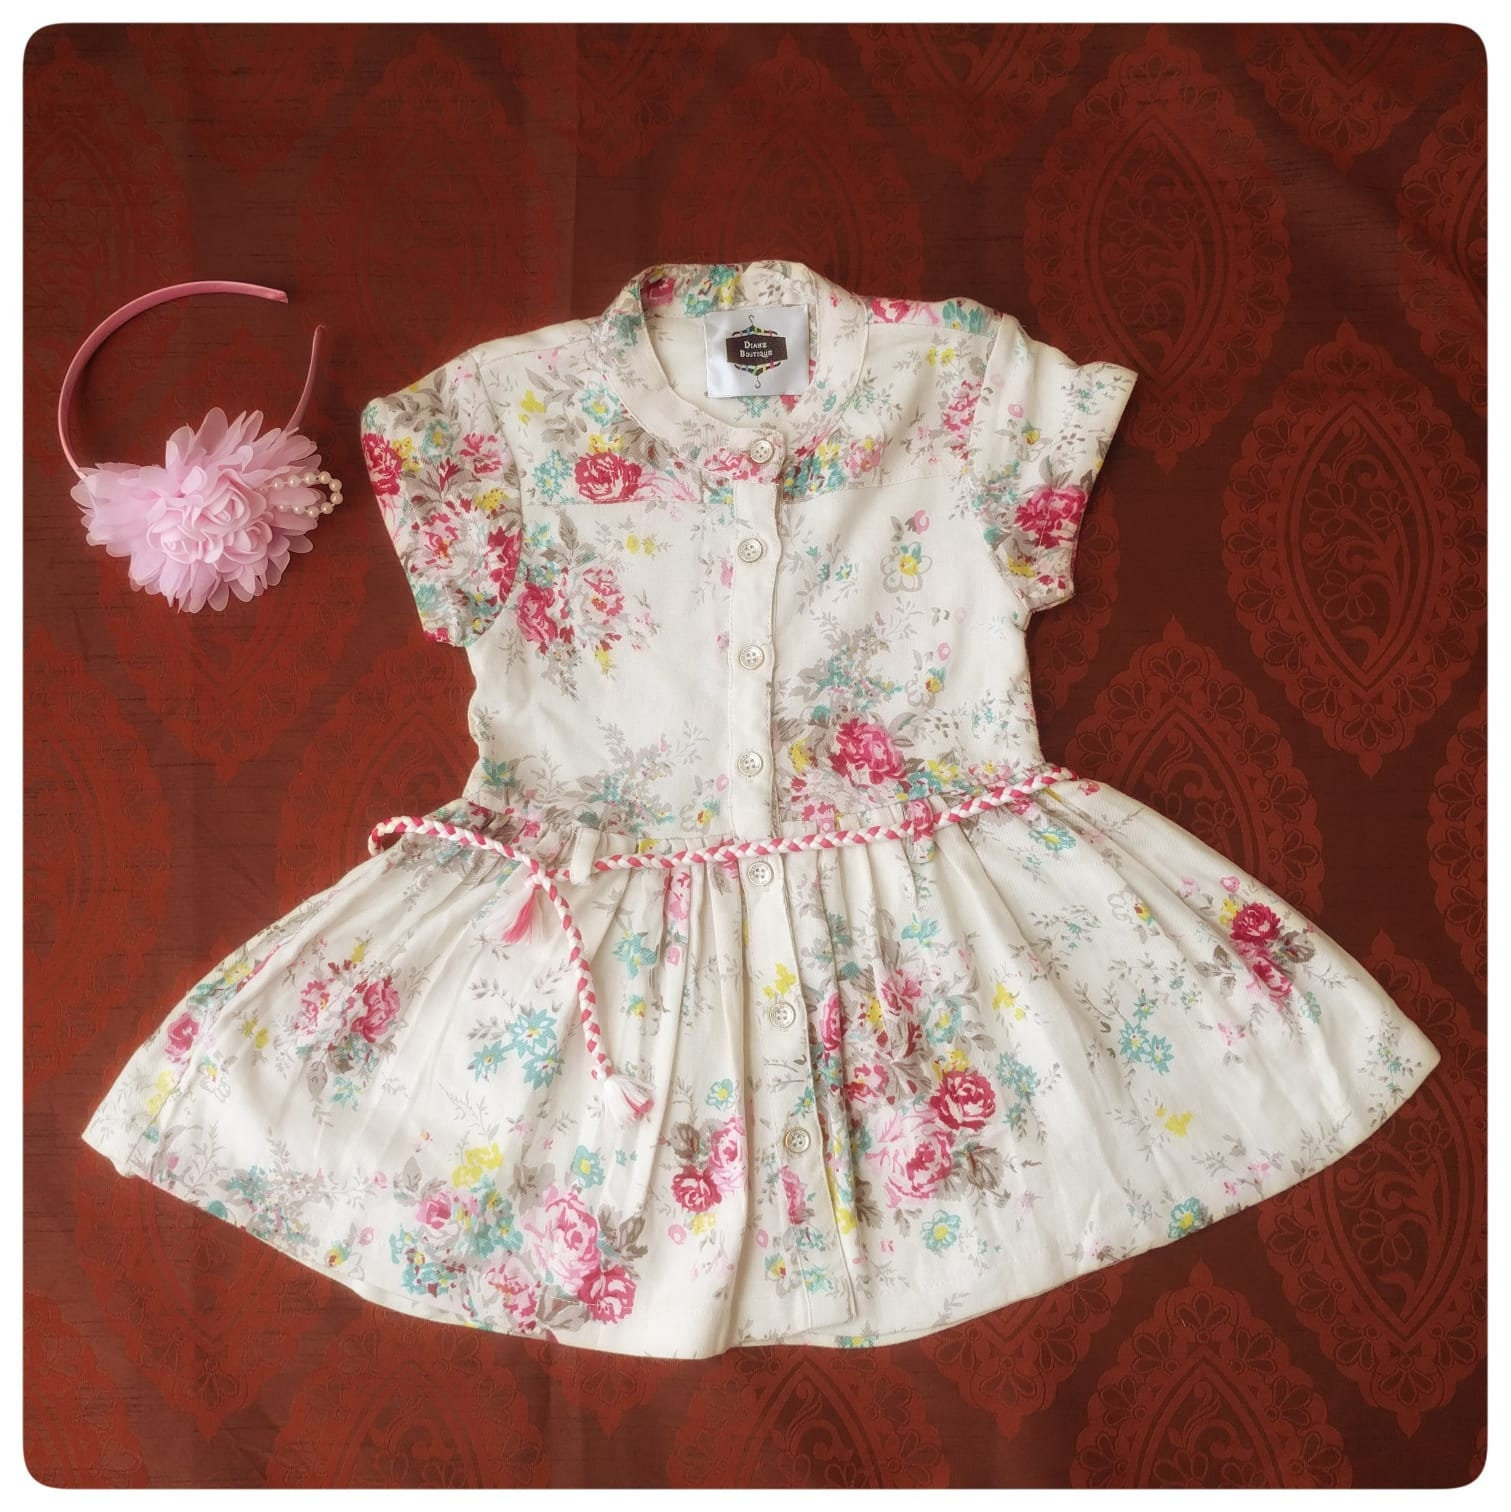 c5588b9fe286 PRE-ORDER Super Cute Cotton Special Occasion Dress with Hair